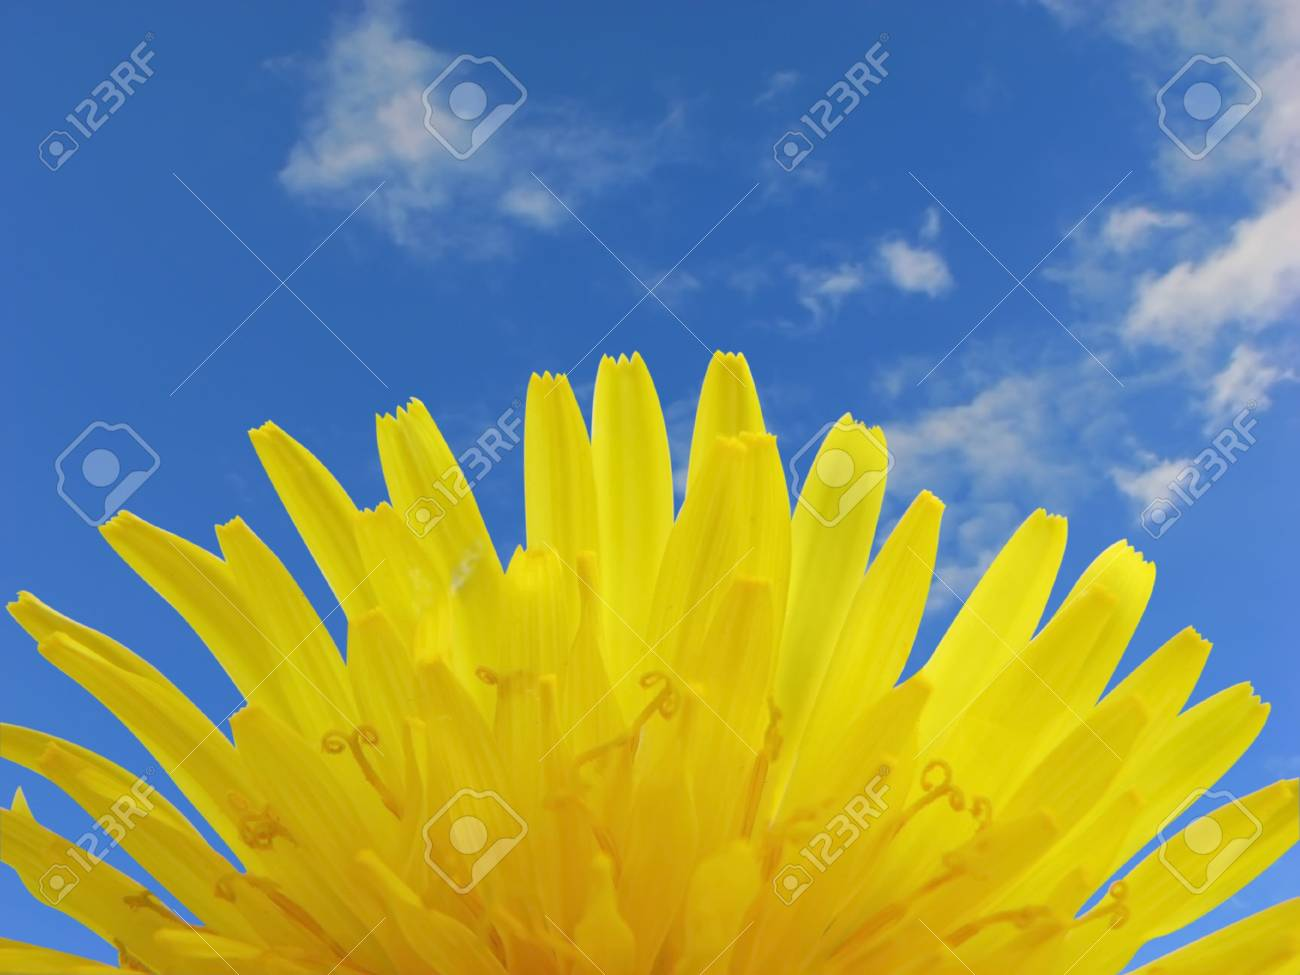 Close up of dandelion looking like the sun. Stock Photo - 5135697